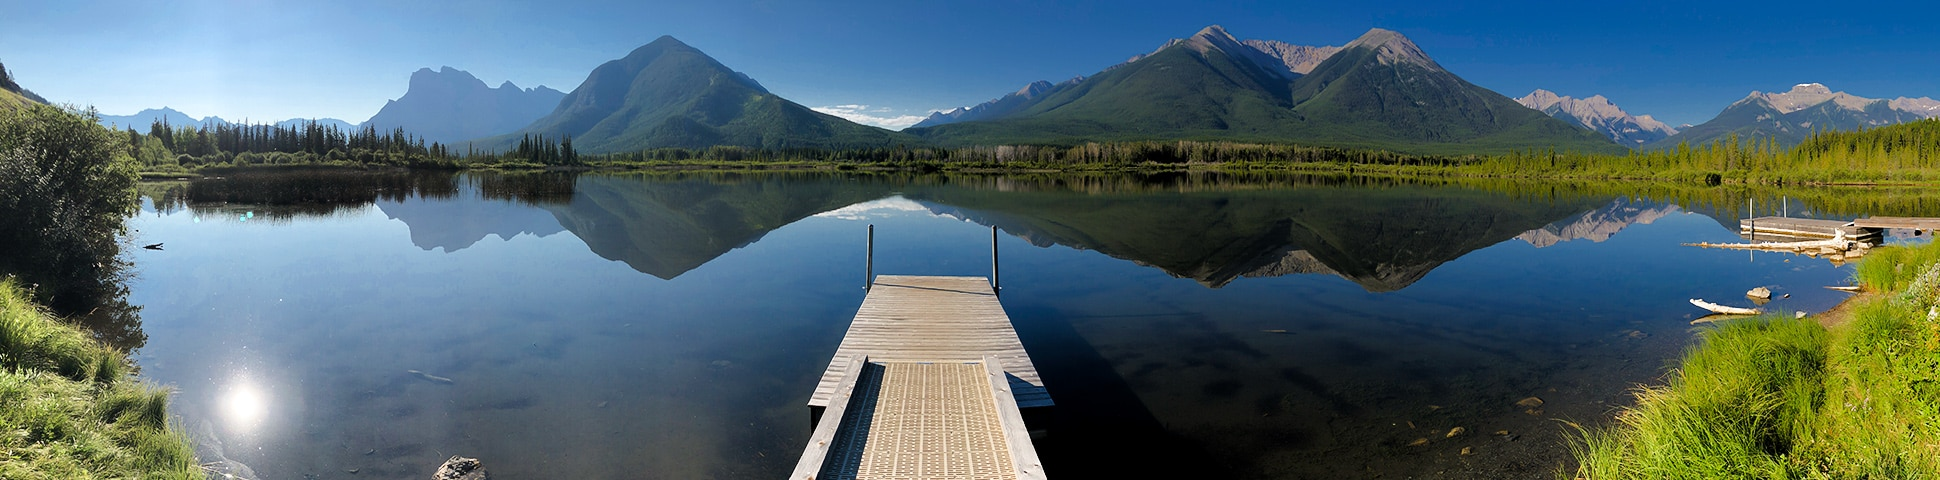 Panoramic view of Vermilion Lakes road biking route in Banff National Park, the Canadian Rockies